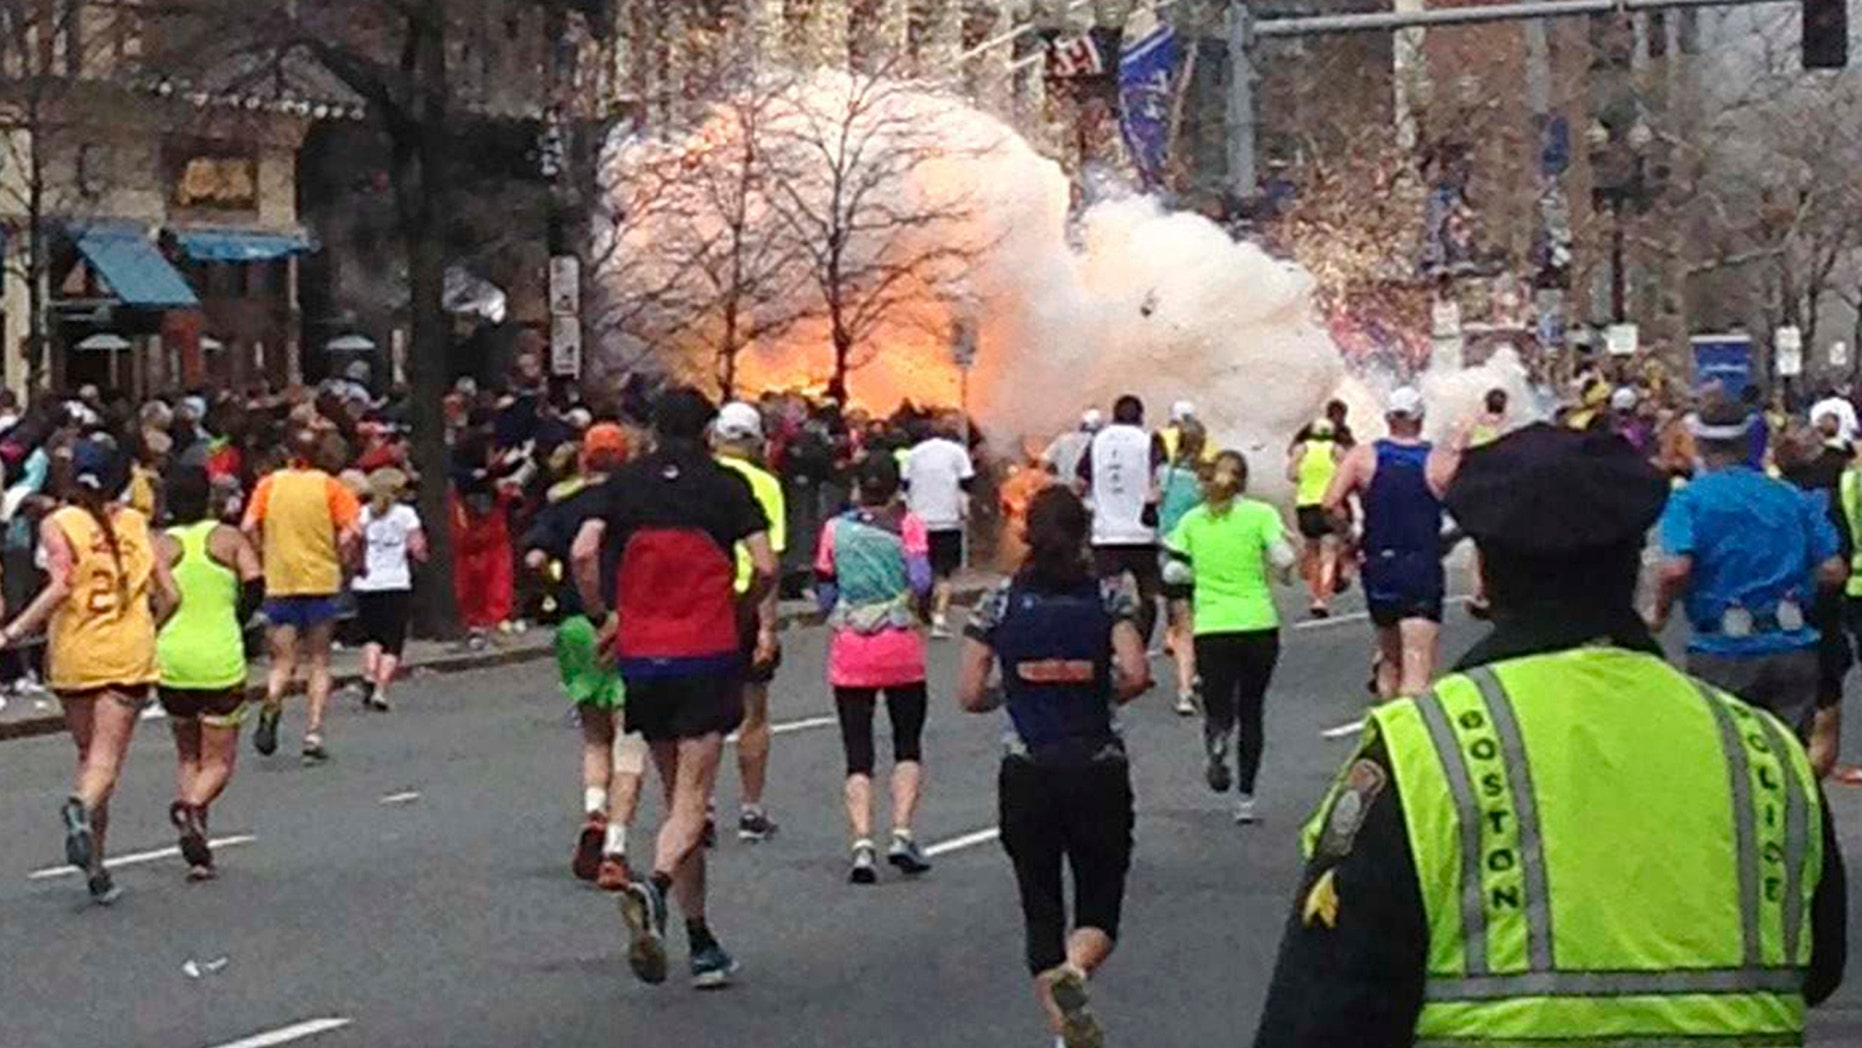 Runners continue to run towards the finish line of the Boston Marathon as an explosion erupts near the finish line of the race. (REUTERS/Dan Lampariello)